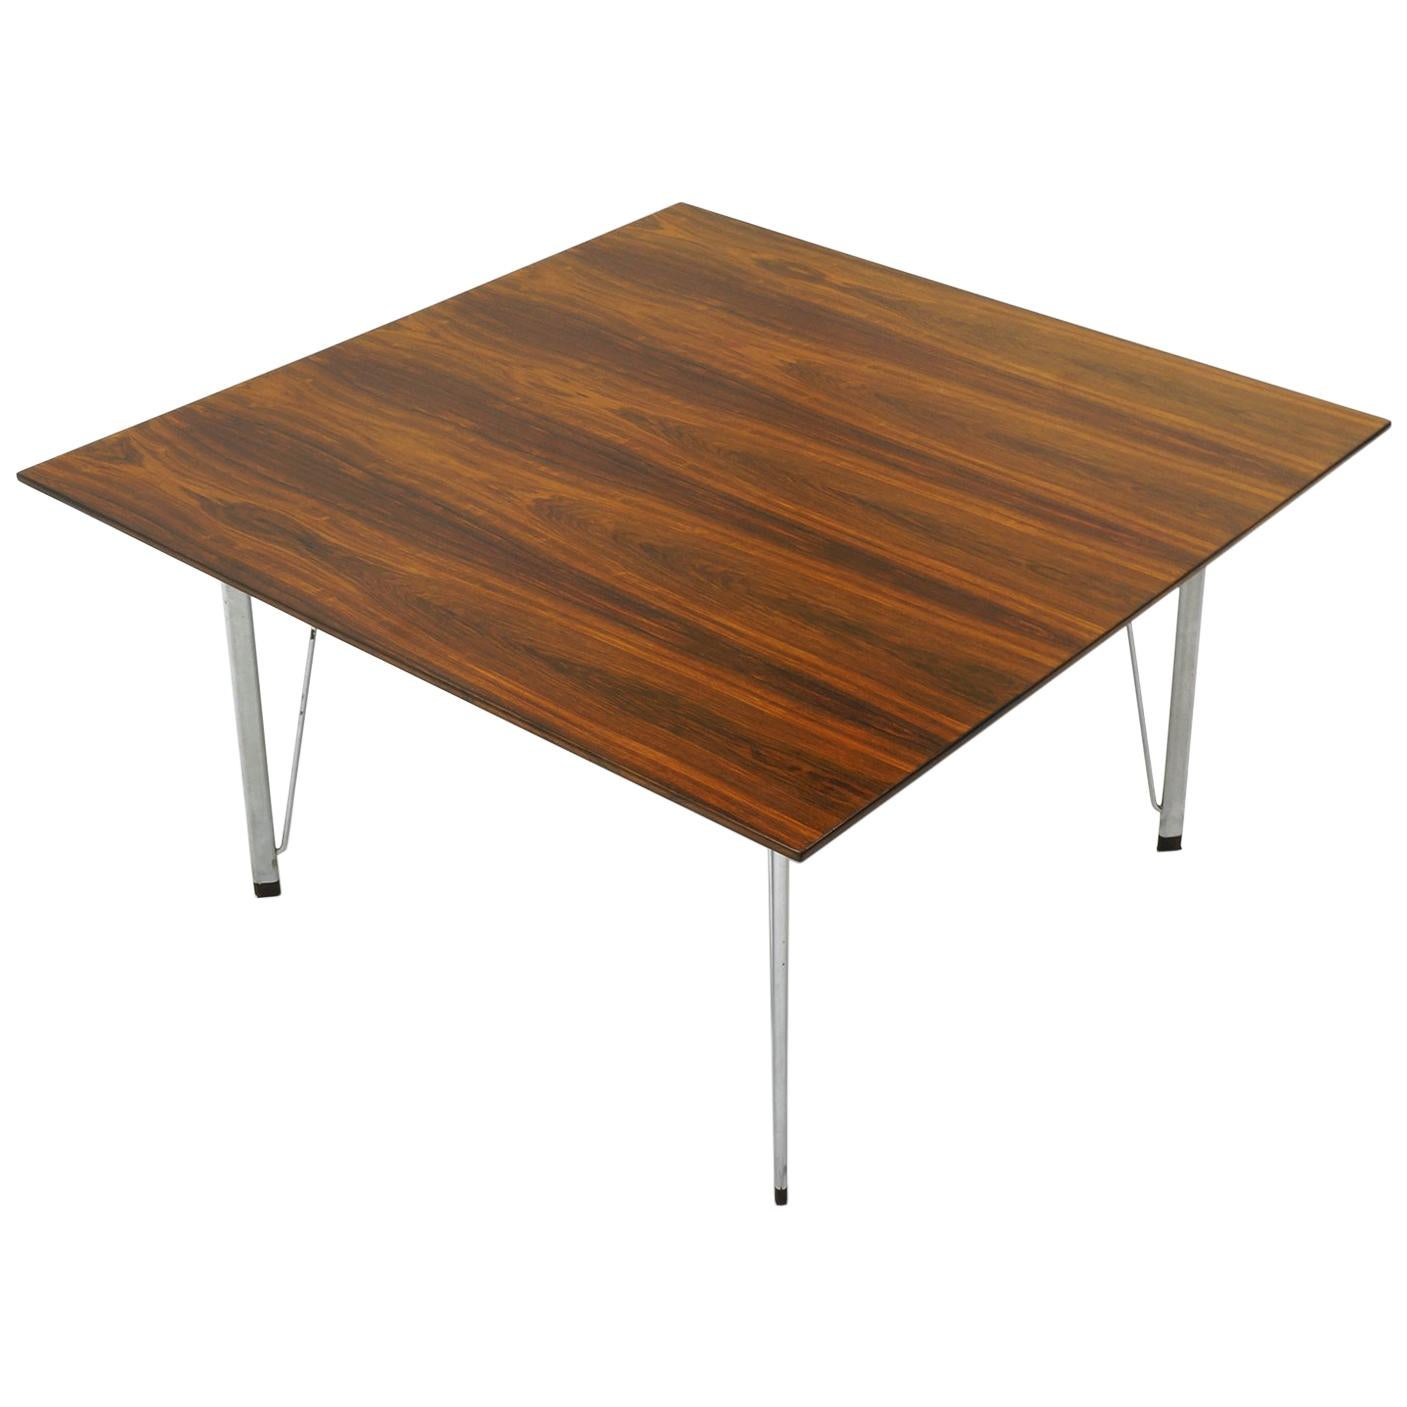 Rosewood Dining Table by Arne Jacobsen for Fritz Hansen